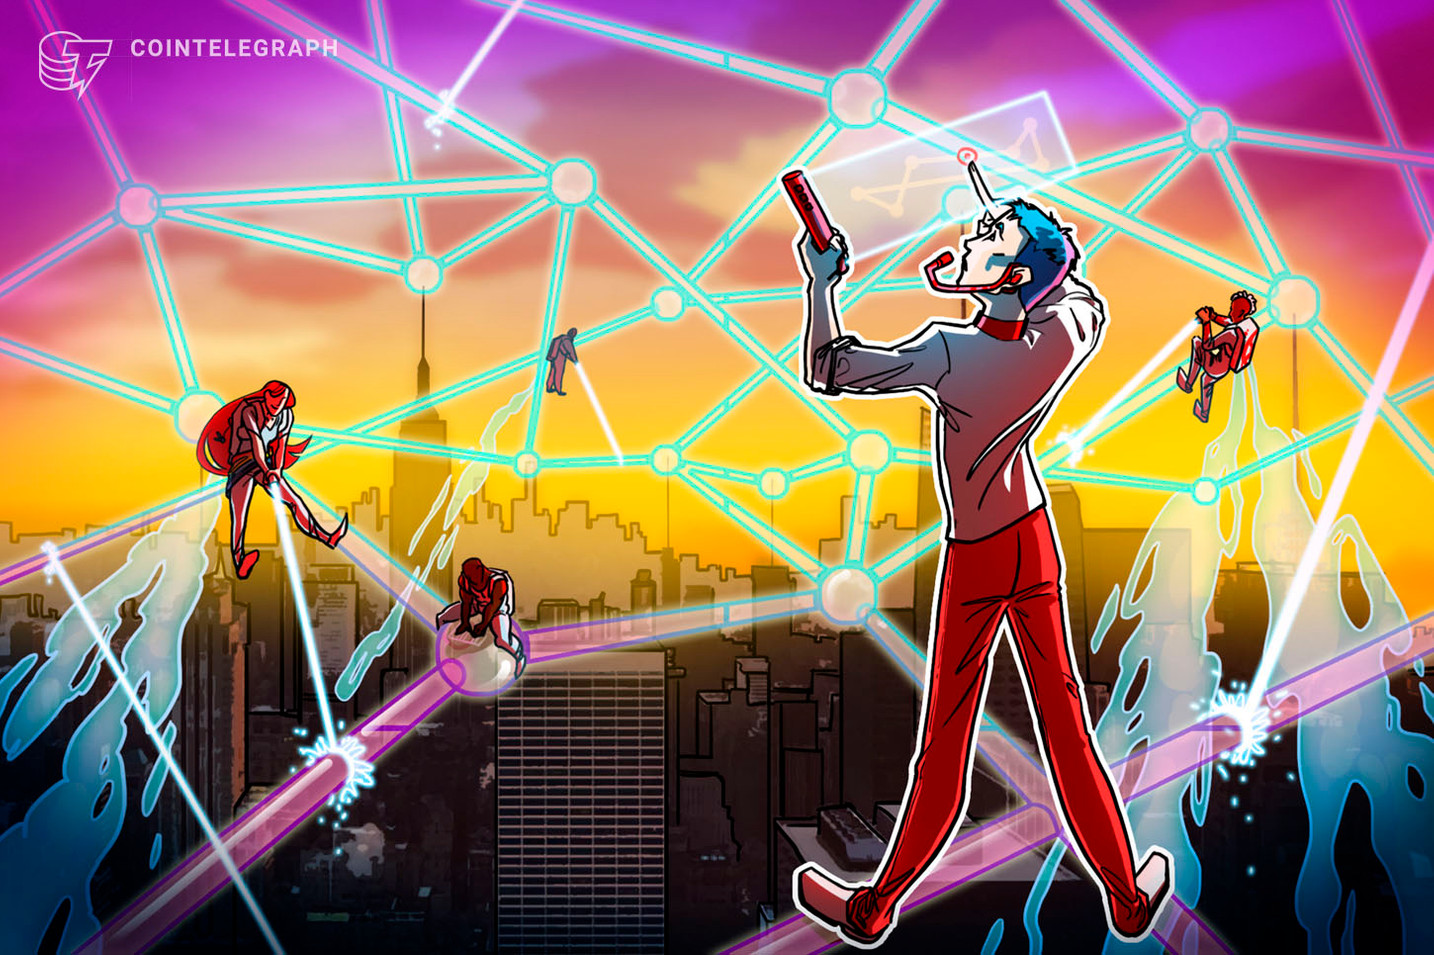 Ho Chi Minh City to Develop Blockchain Regulations for Smart Cities